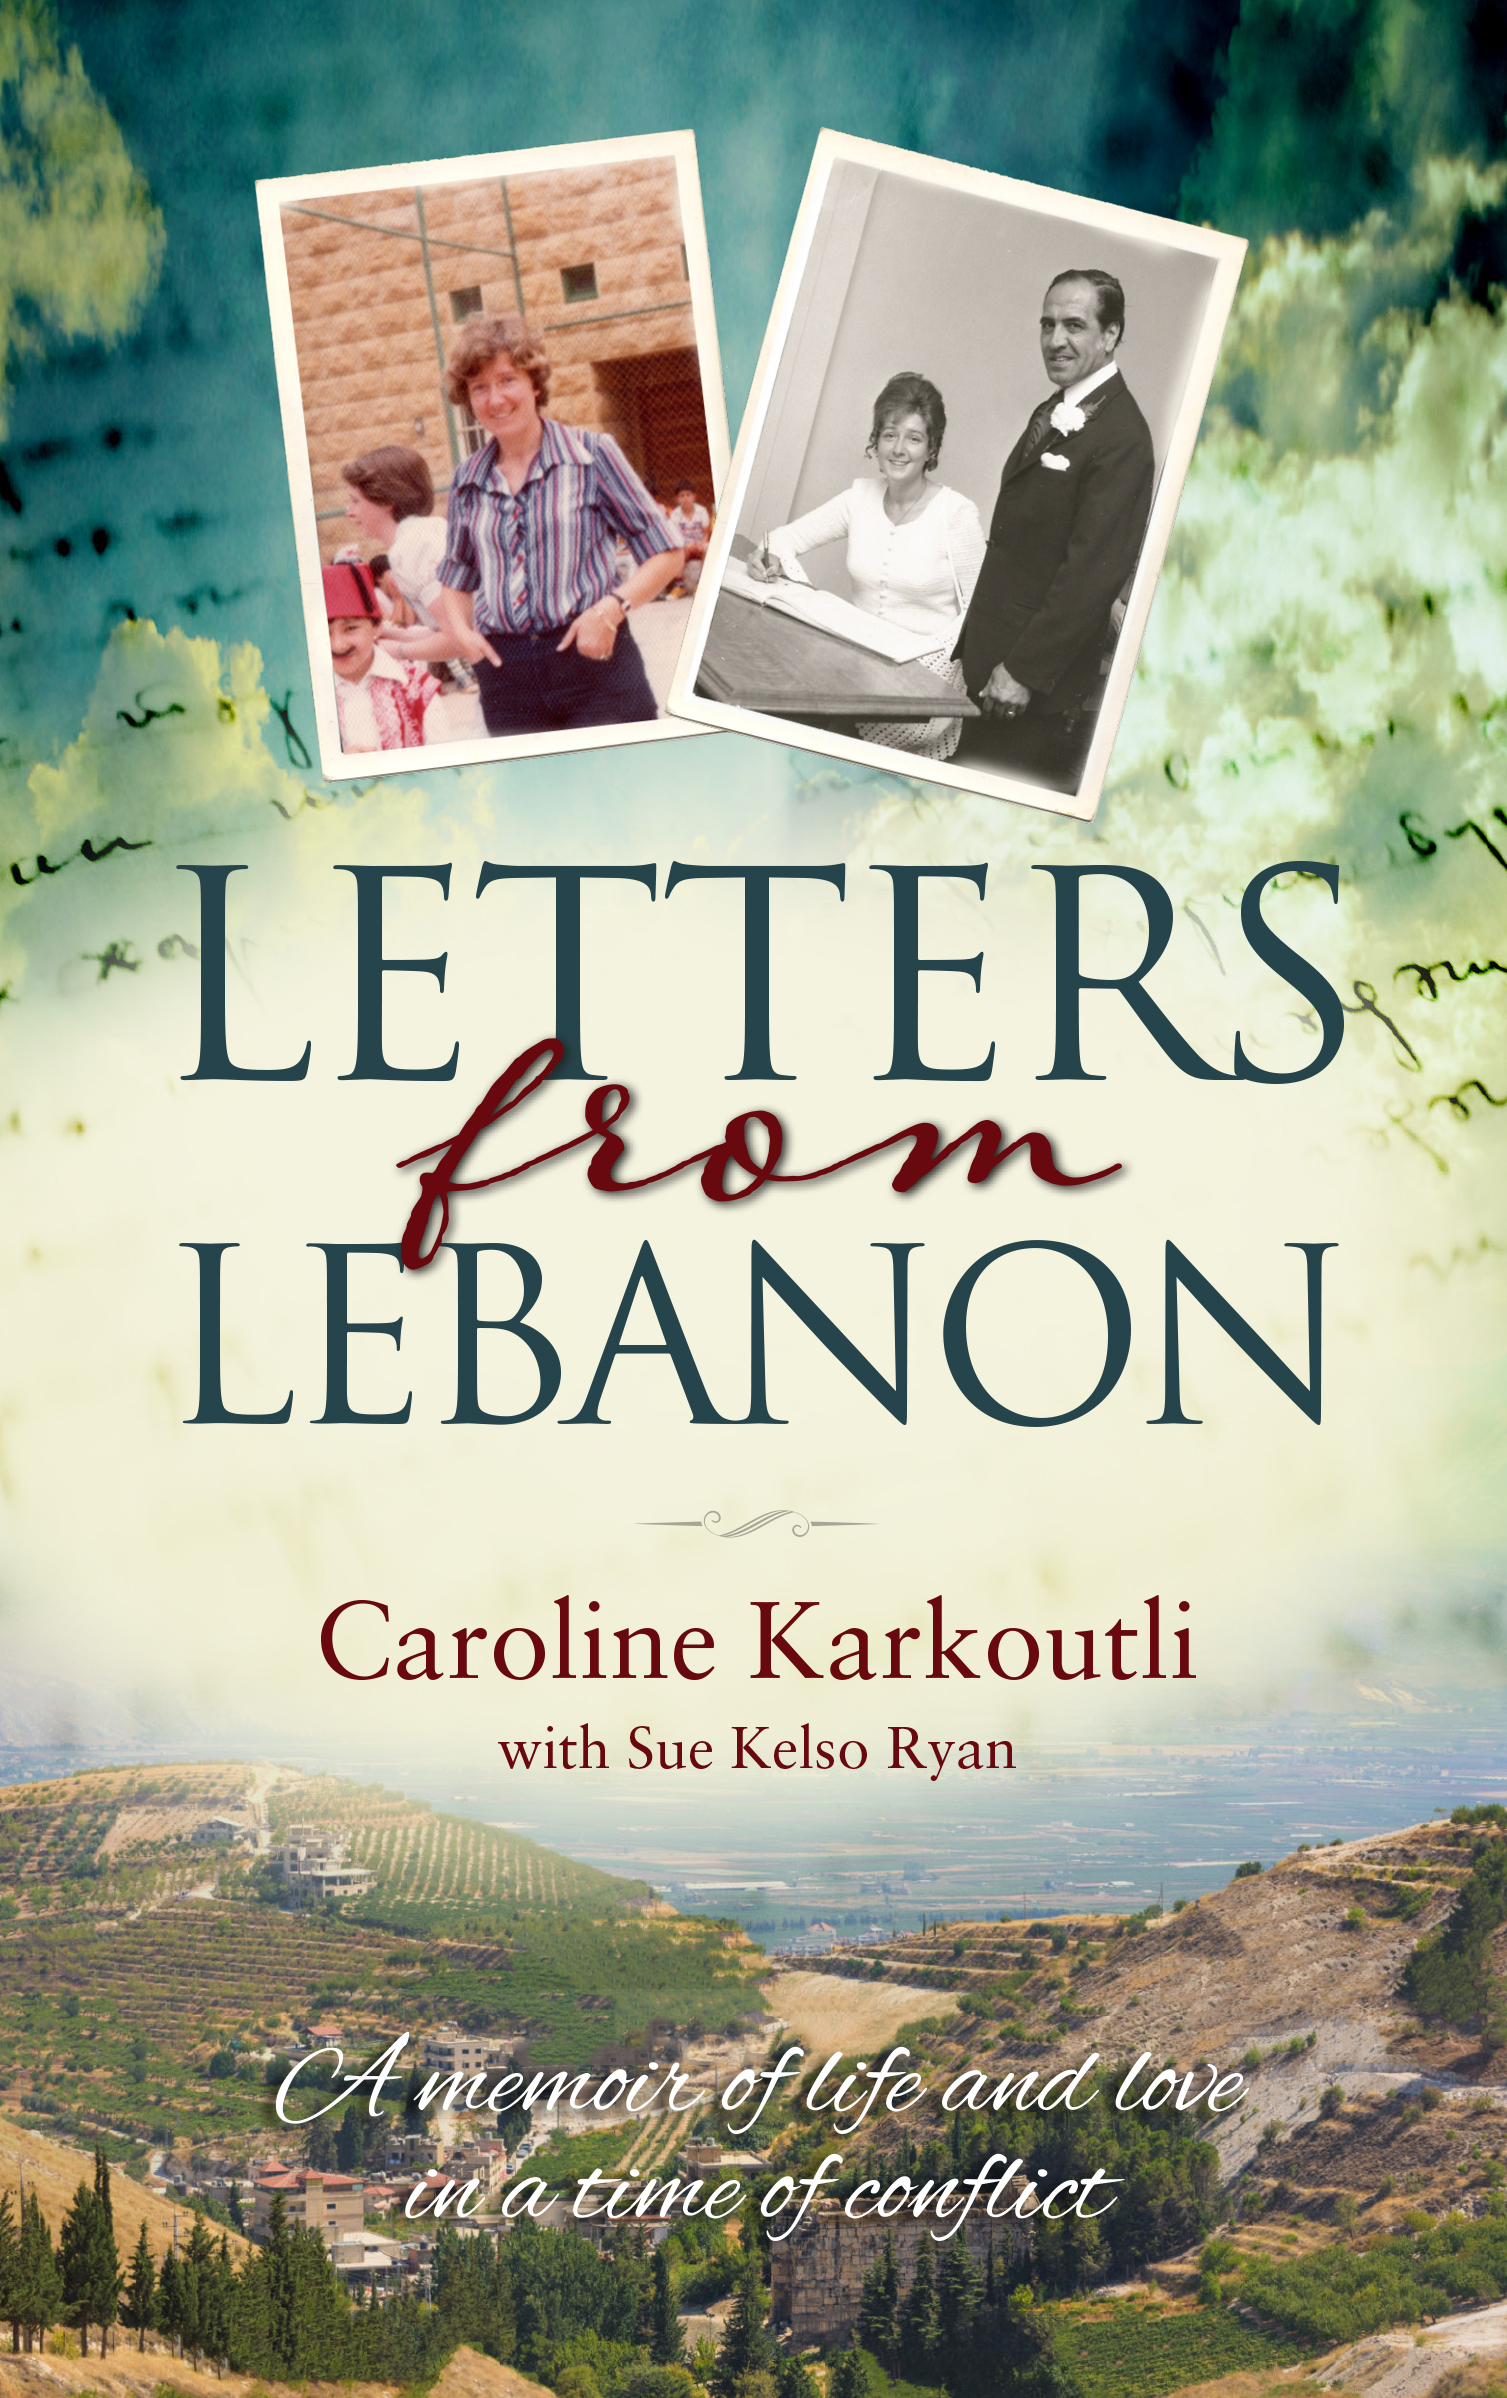 New Release Letters from Lebanon by Caroline Karkoutli and